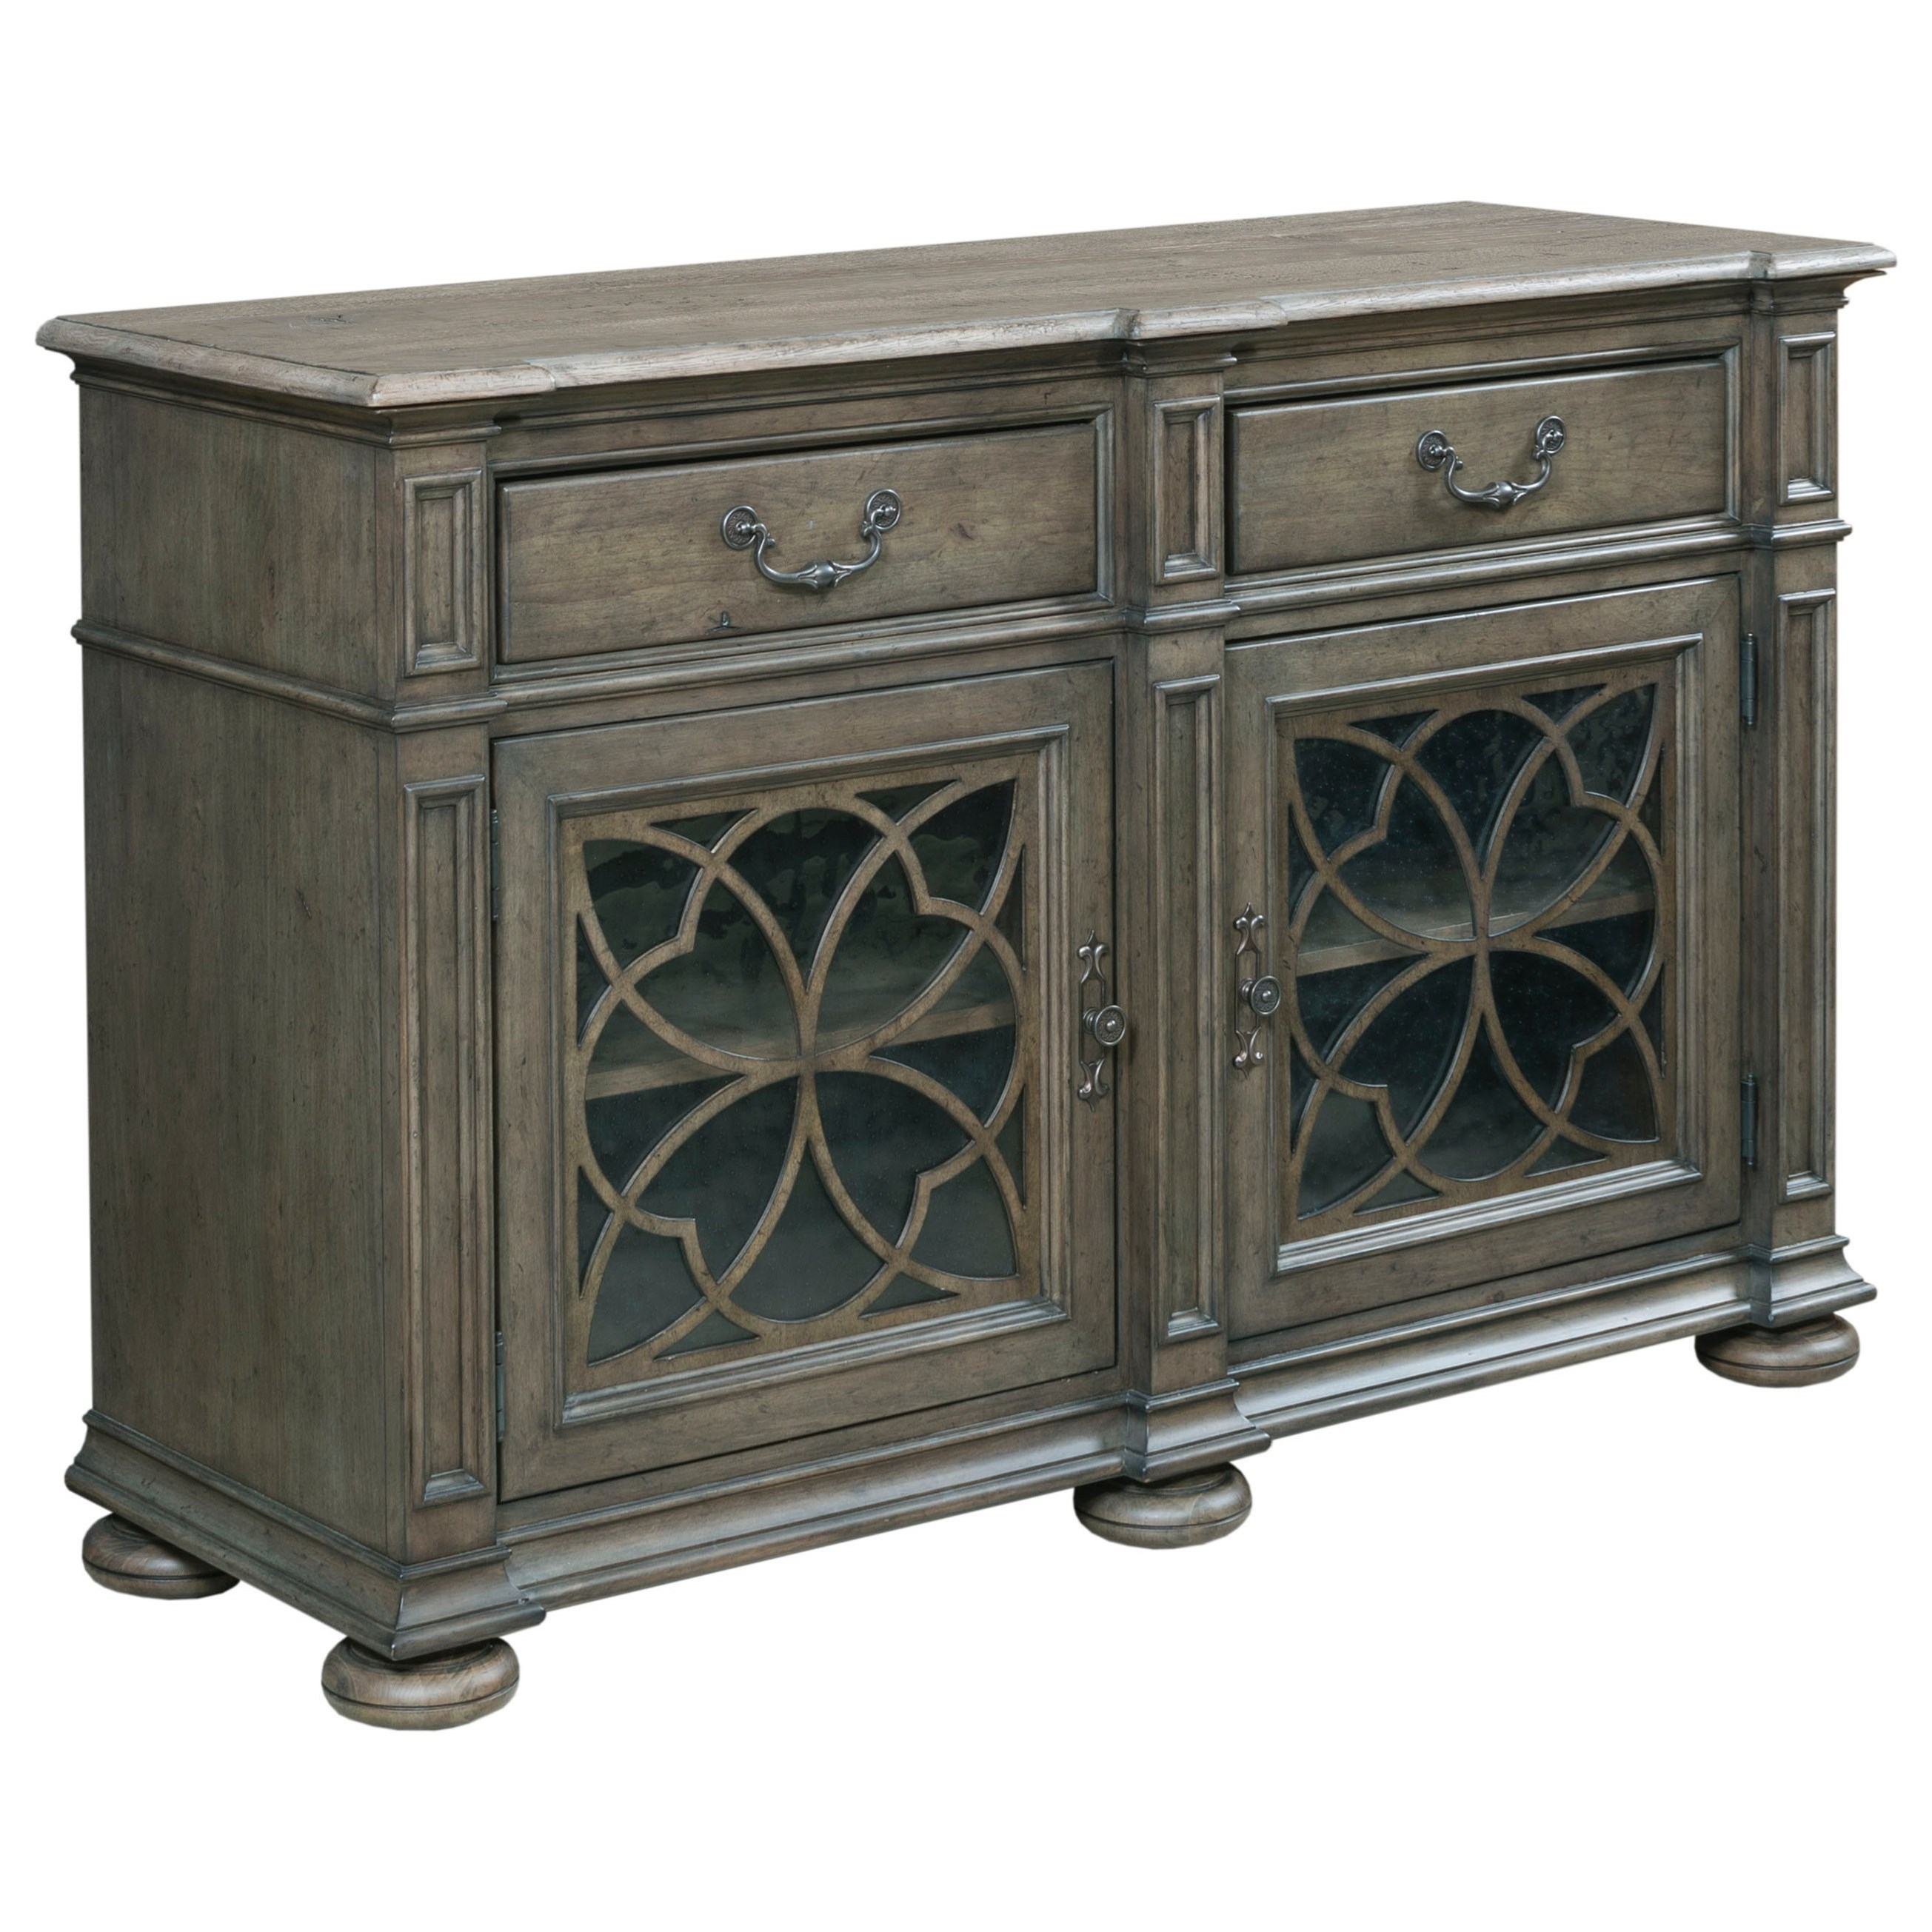 Greyson Harper Two Door Buffet by Kincaid Furniture at Northeast Factory Direct